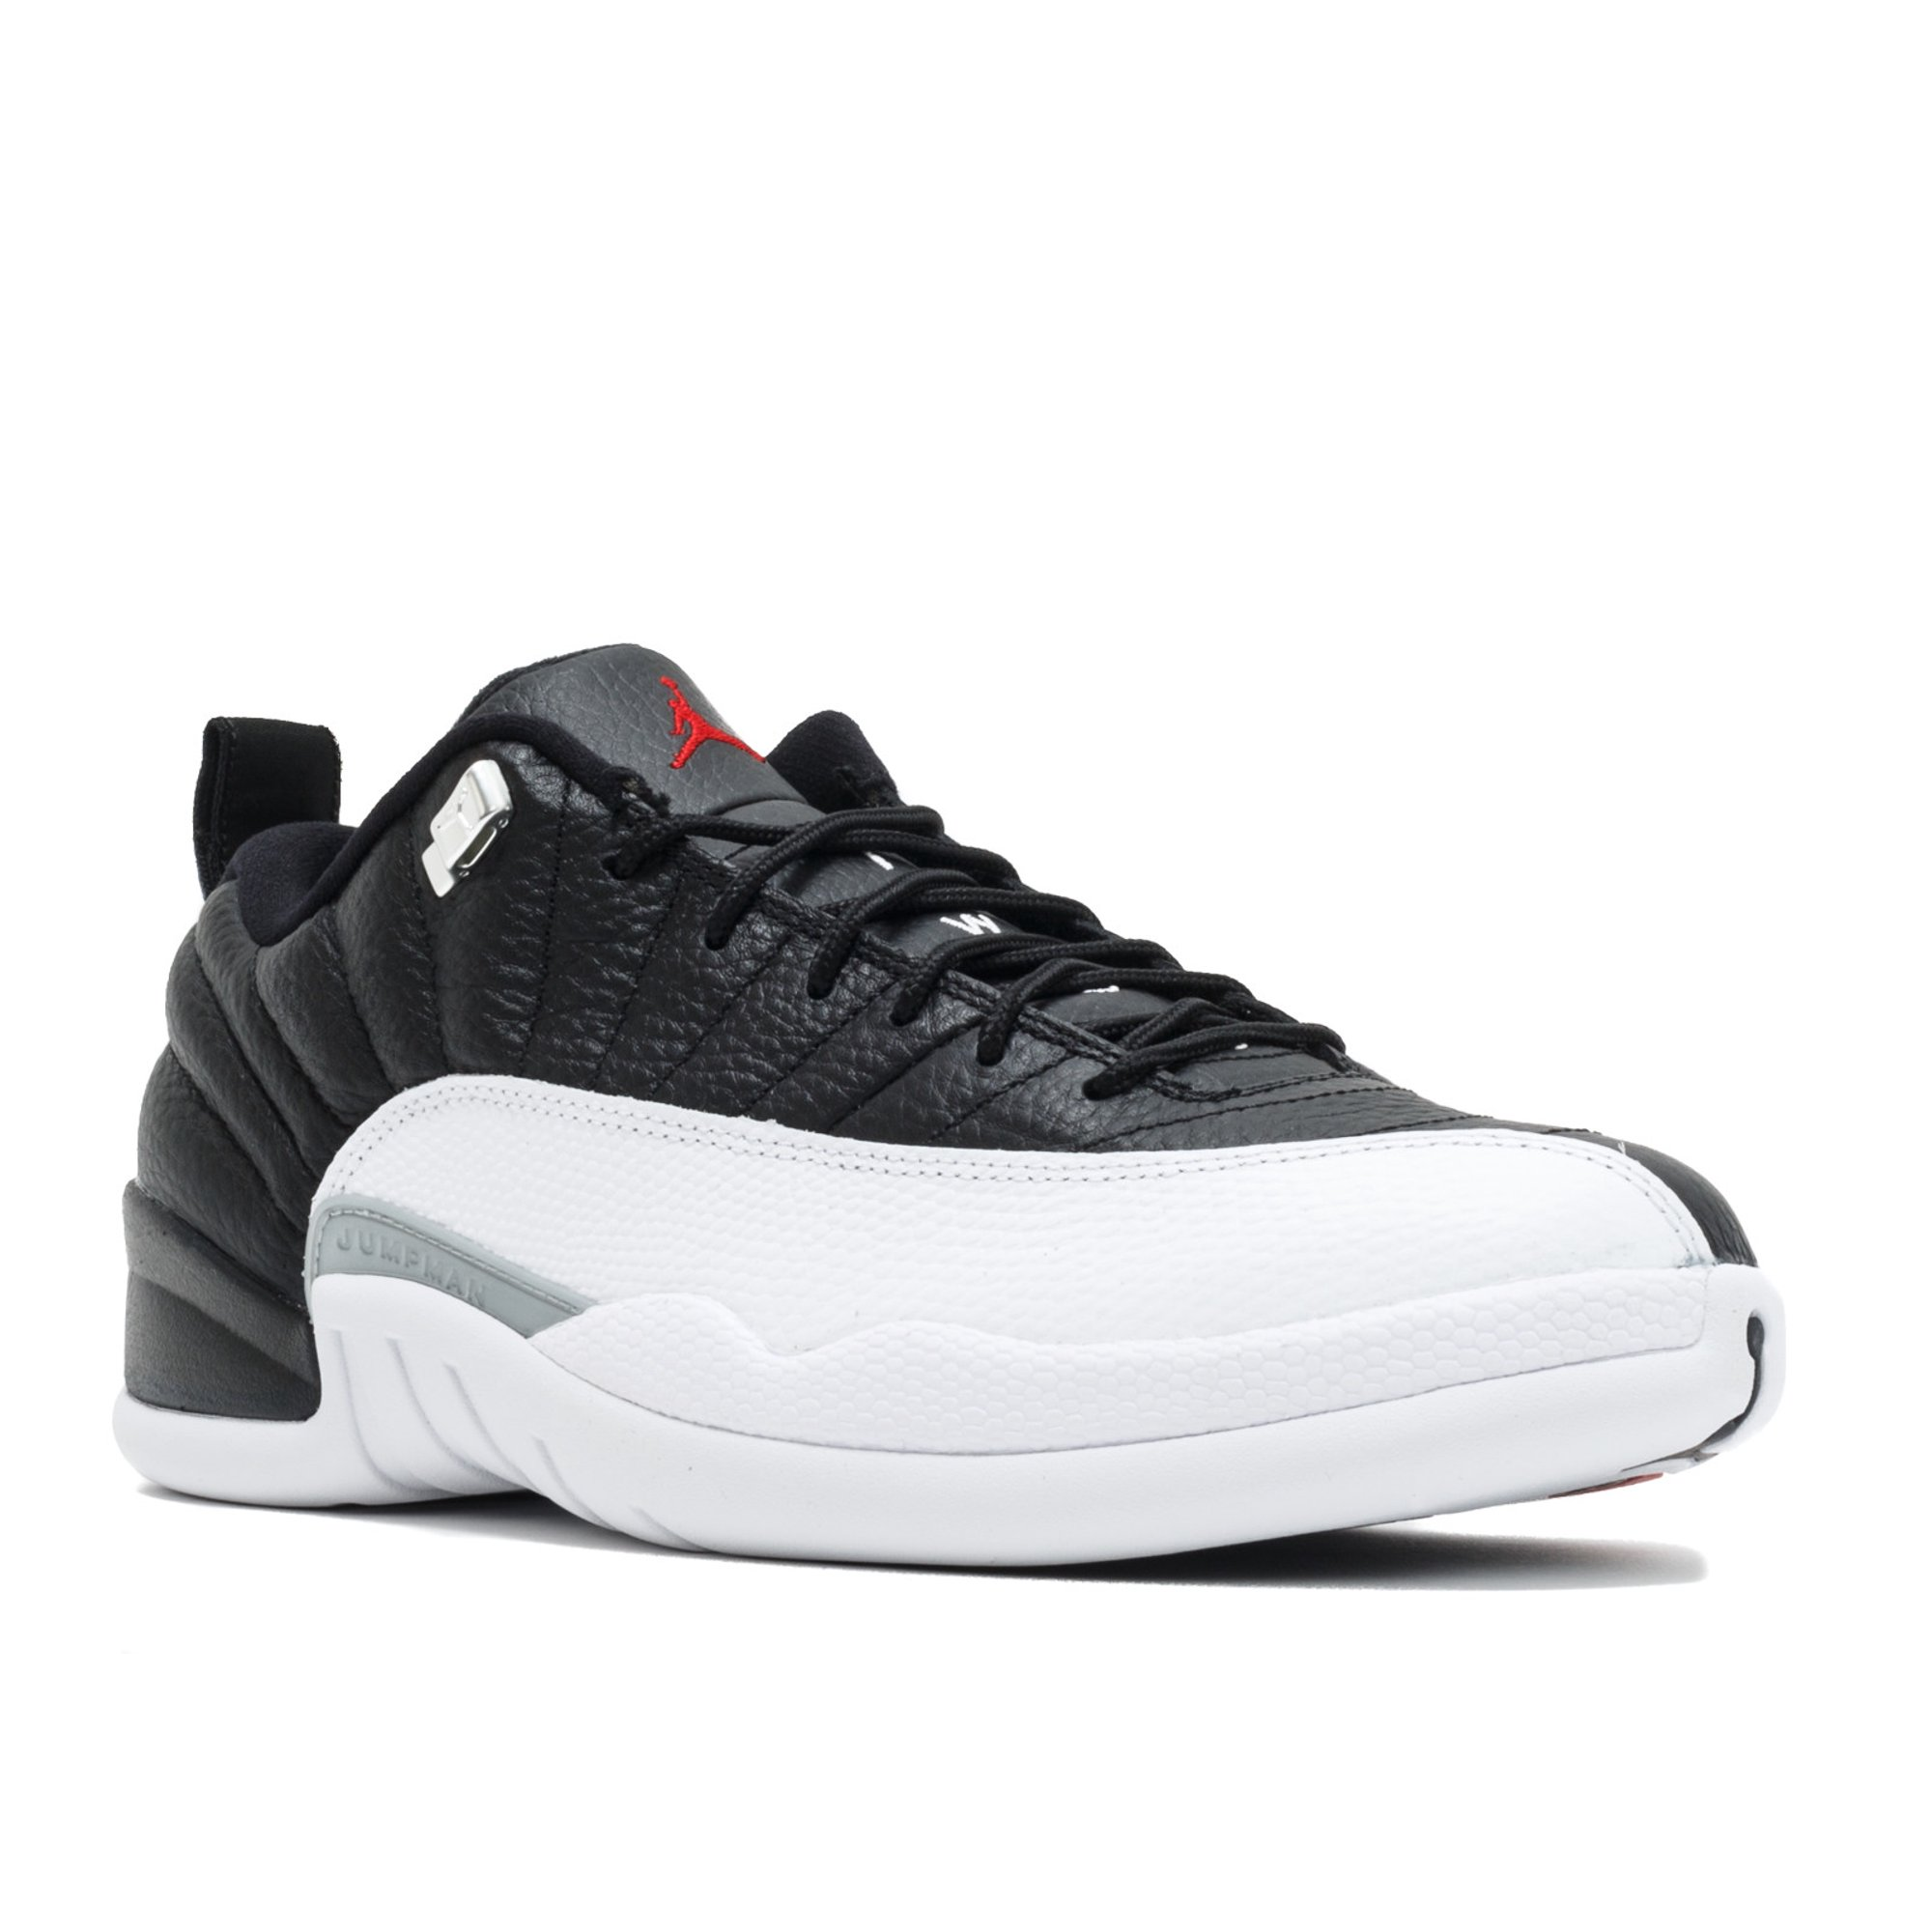 low priced e1bd7 73337 Air Jordan - Men - Air Jordan 12 Retro Low 'Playoff' - 308317-004 - Size 14